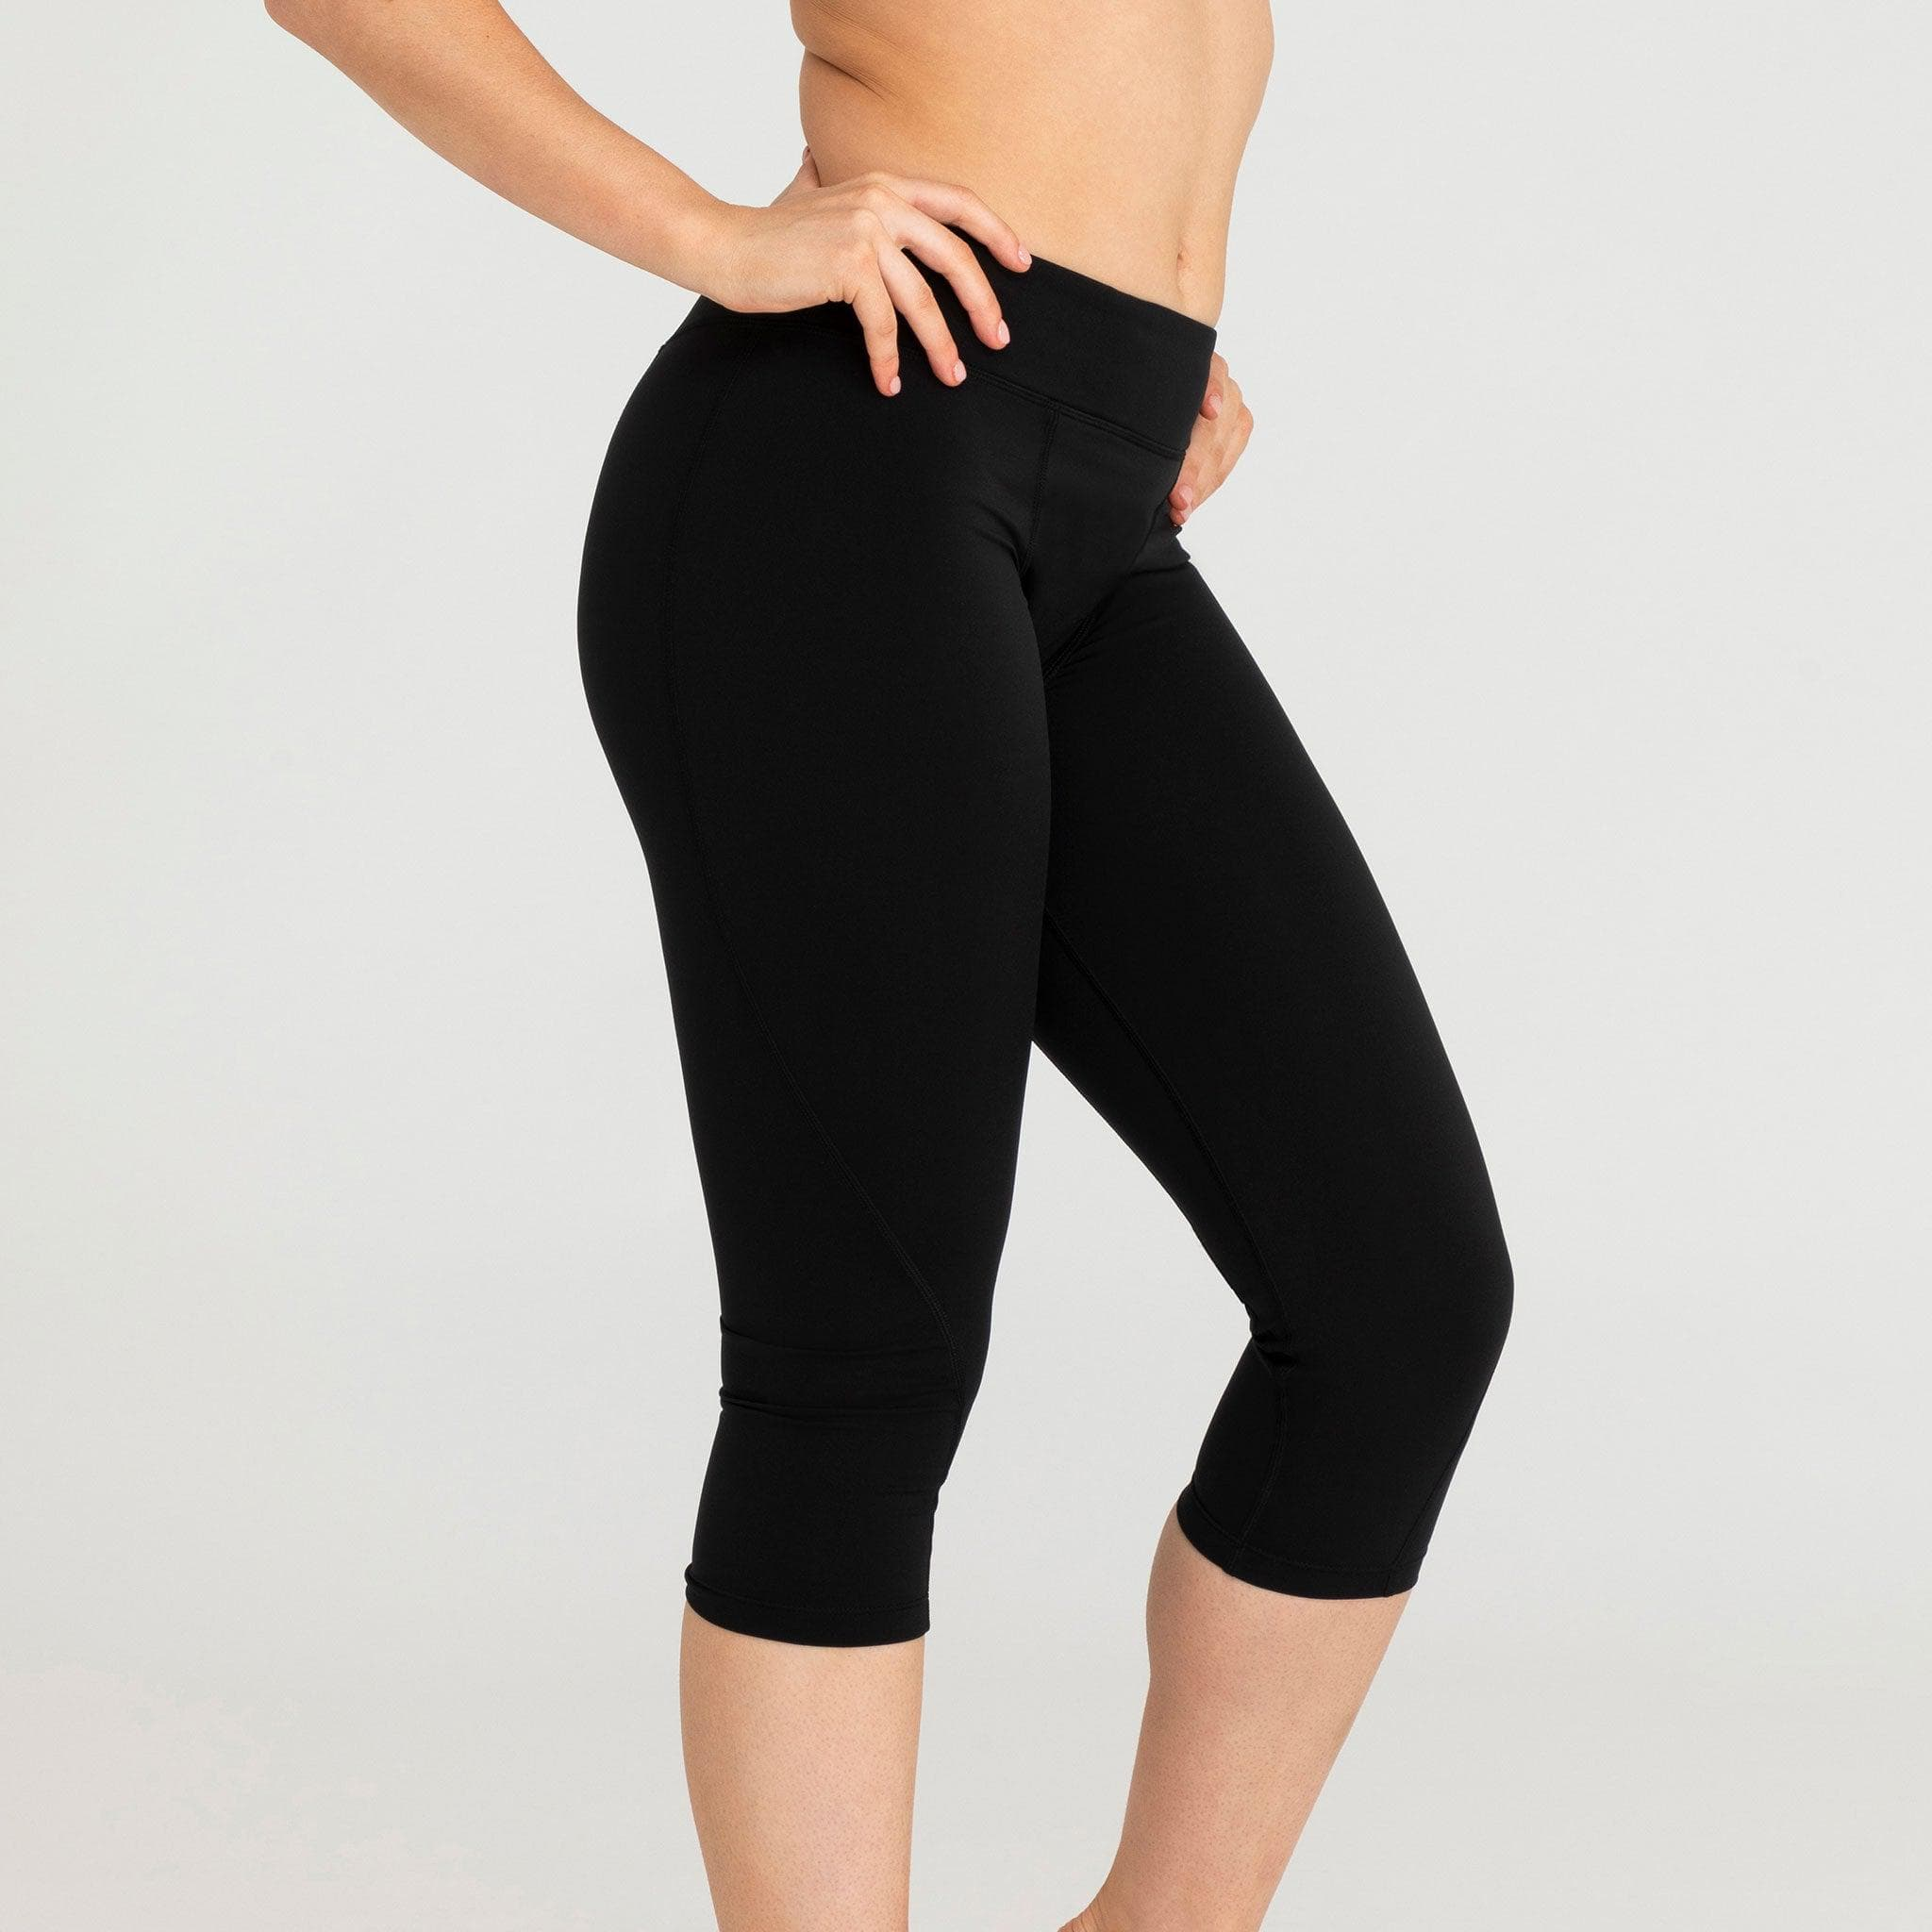 Modibodi Active Legging Black Light Moderate Model 2 1